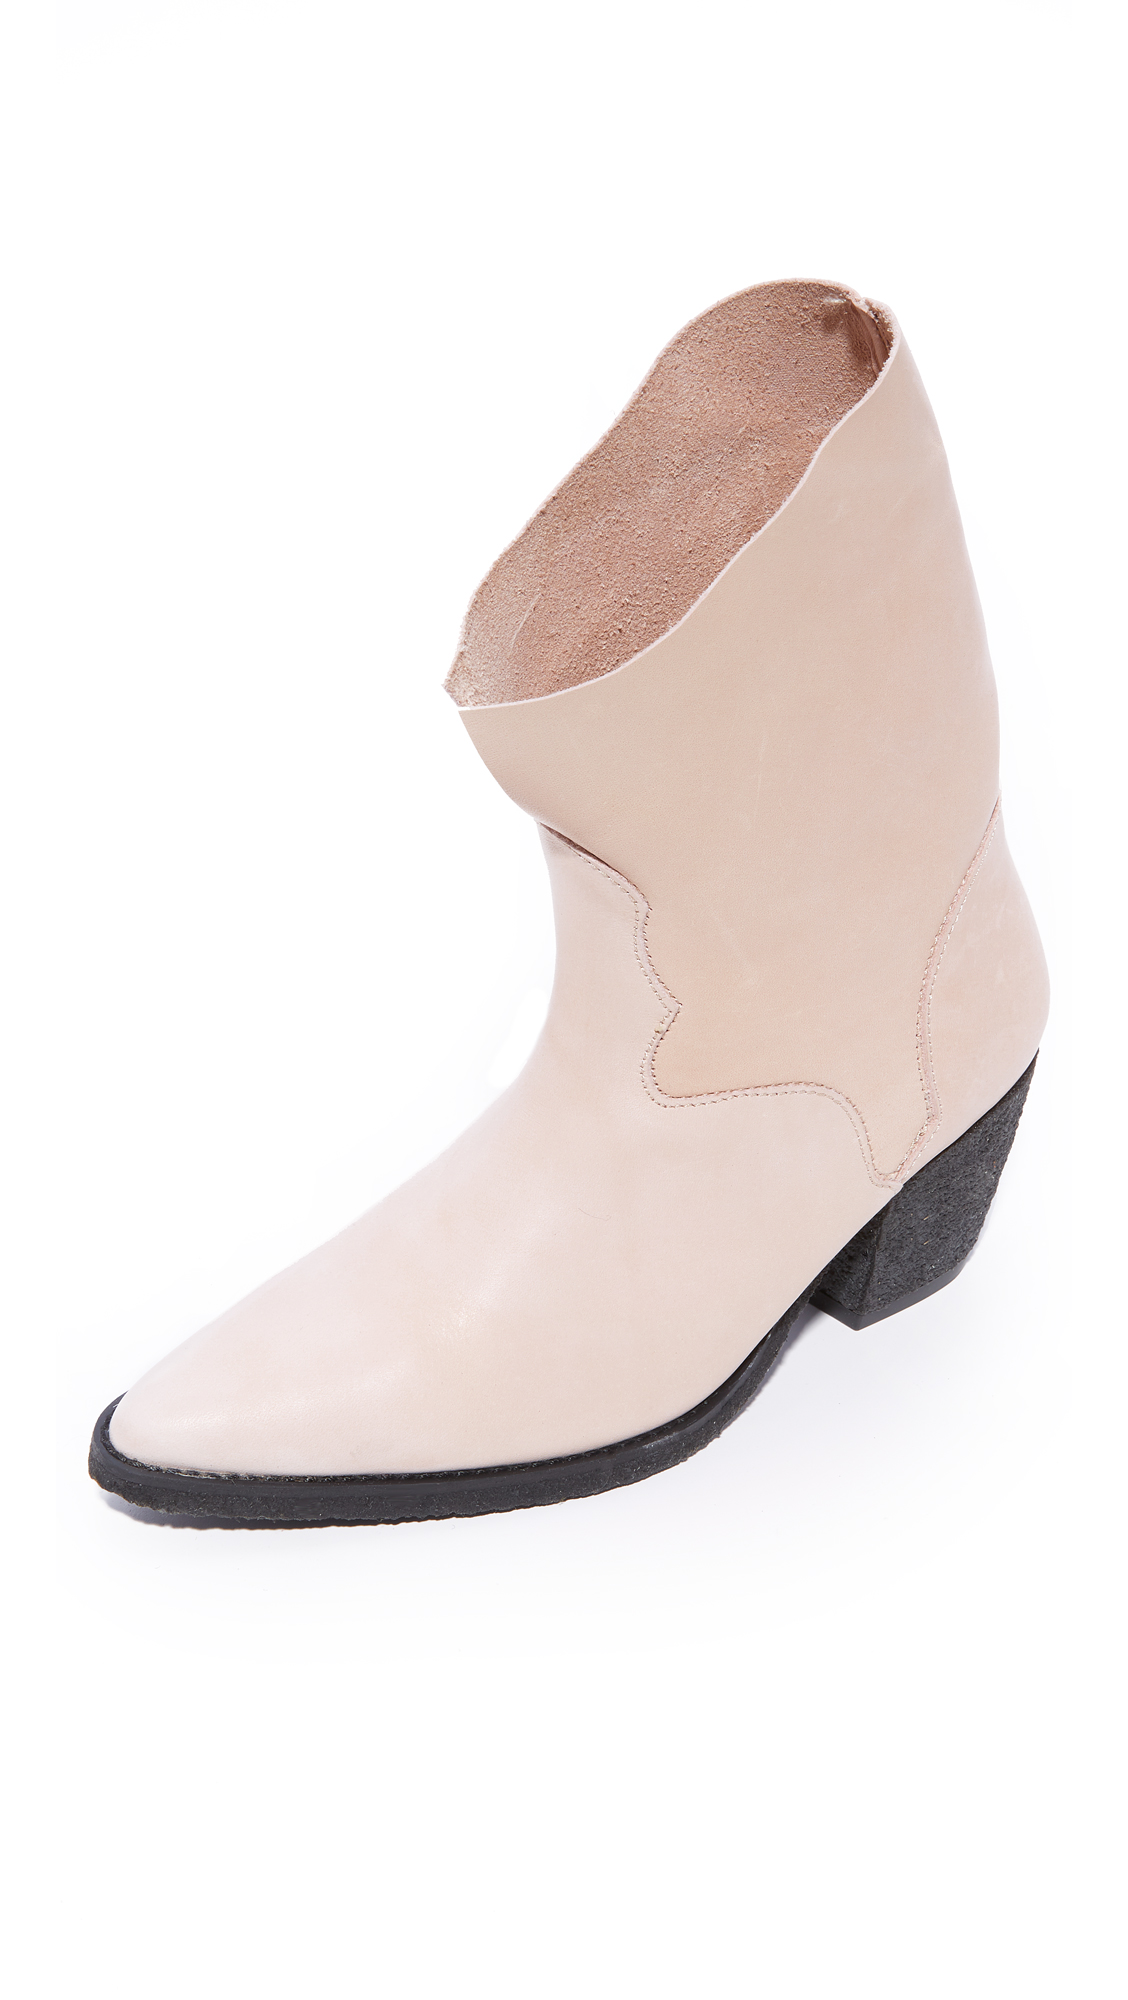 Free People Twilight Ankle Booties - Nude